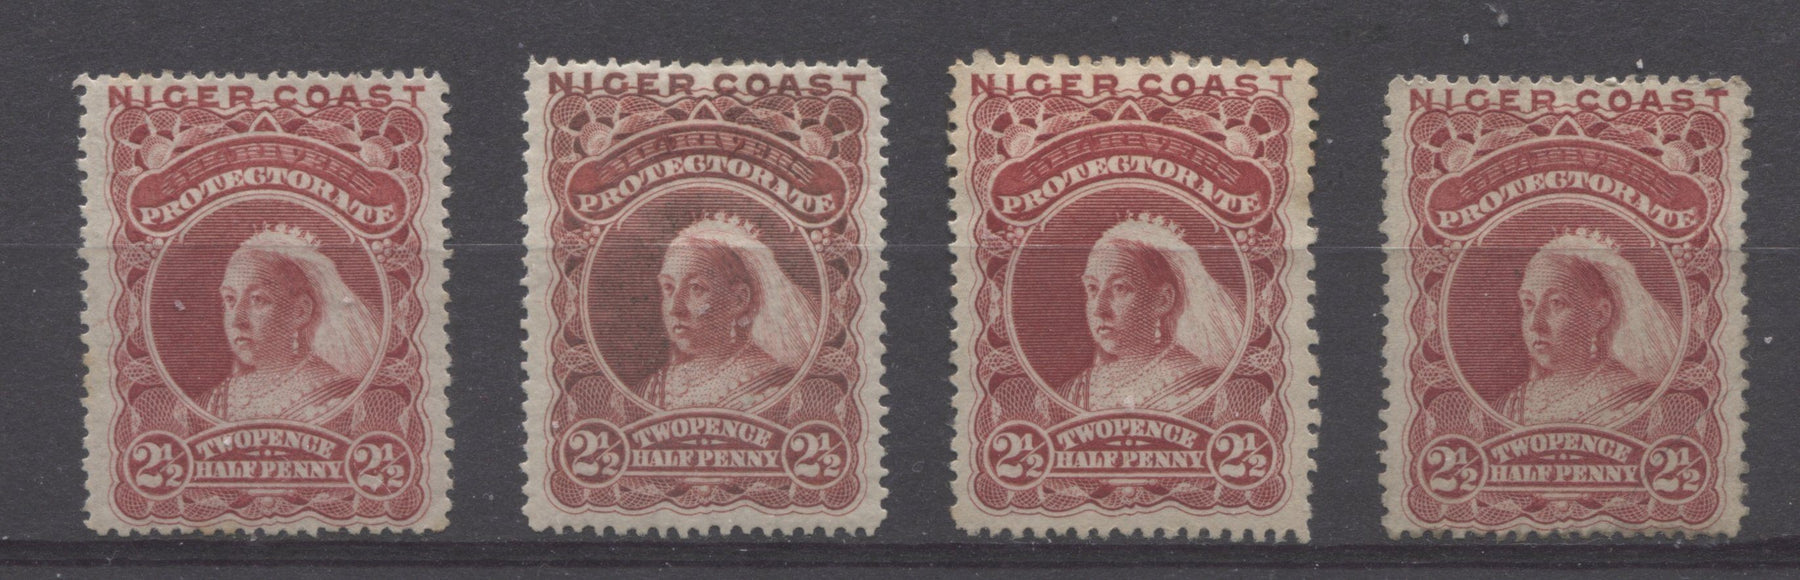 The Unwatermarked Queen Victoria First Waterlow Issue of Niger Coast Protectorate Part Six - The 2d Green and 2.5d Lake